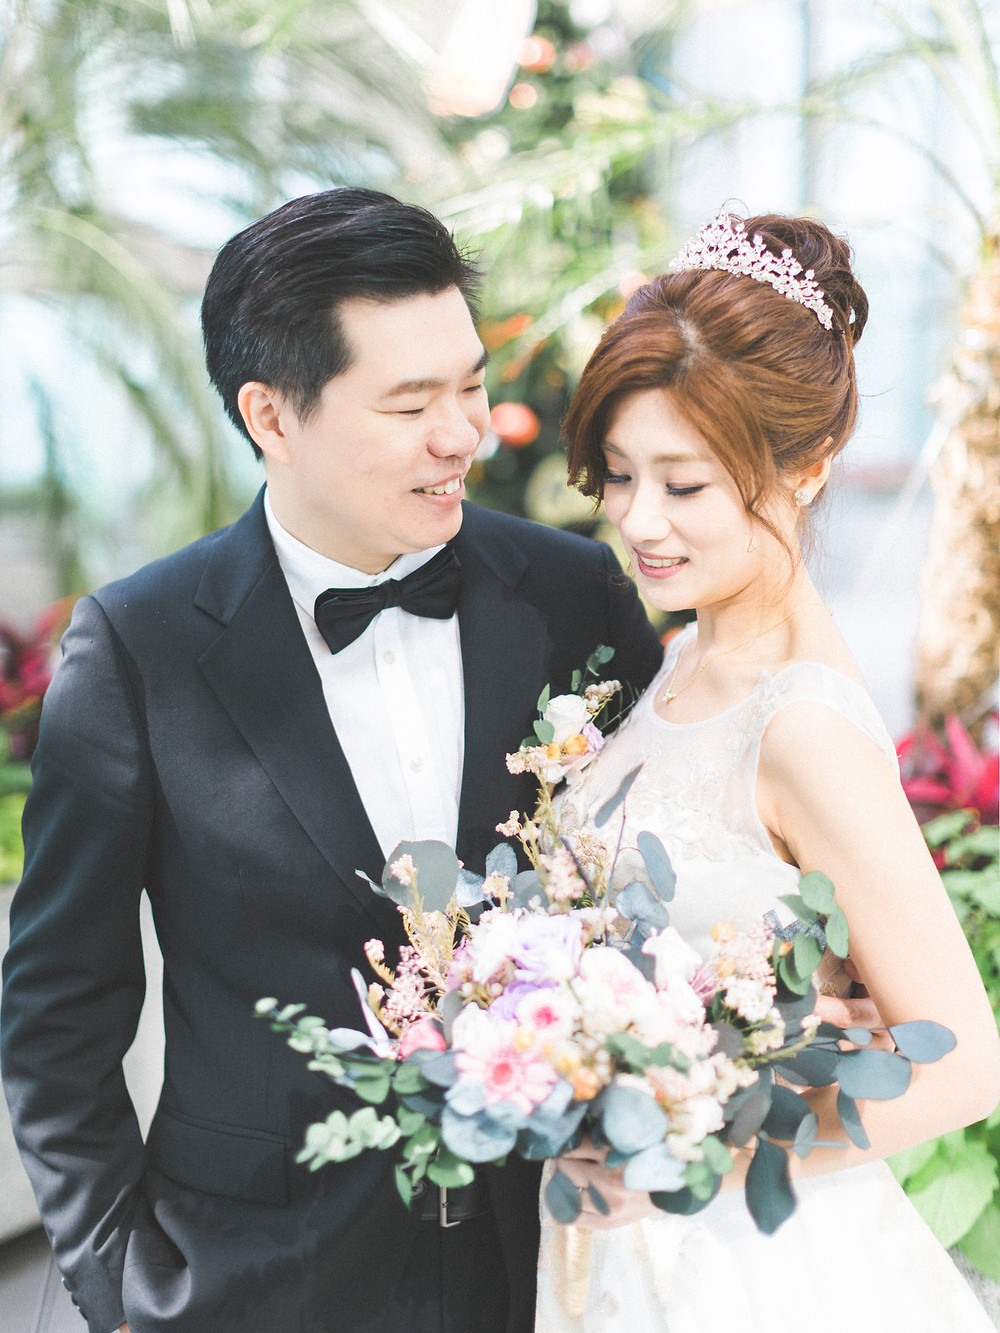 Rick & Pei-Wen Wedding | Mega50 鼎鼎宴會廳 Arther Chen Photography美式婚禮